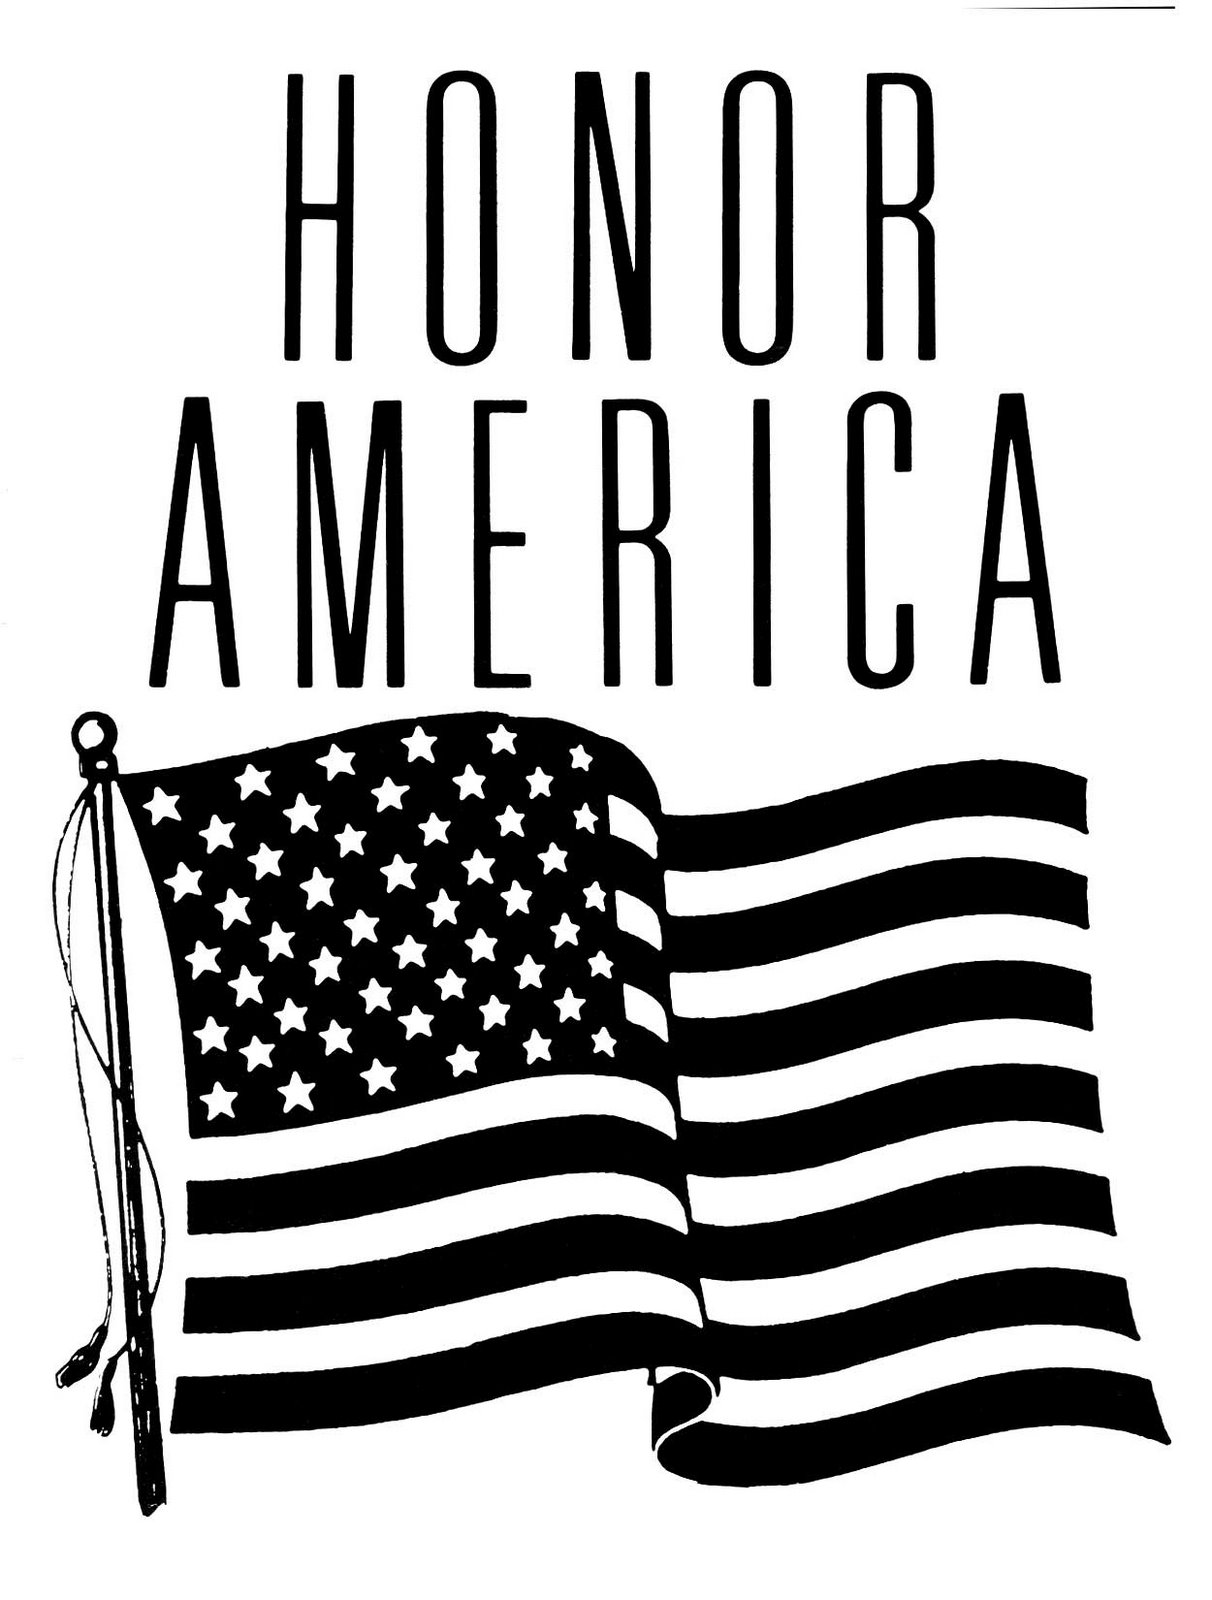 American flag waving black and white clipart royalty free stock Free American Flag Clip Art Black And White, Download Free Clip Art ... royalty free stock